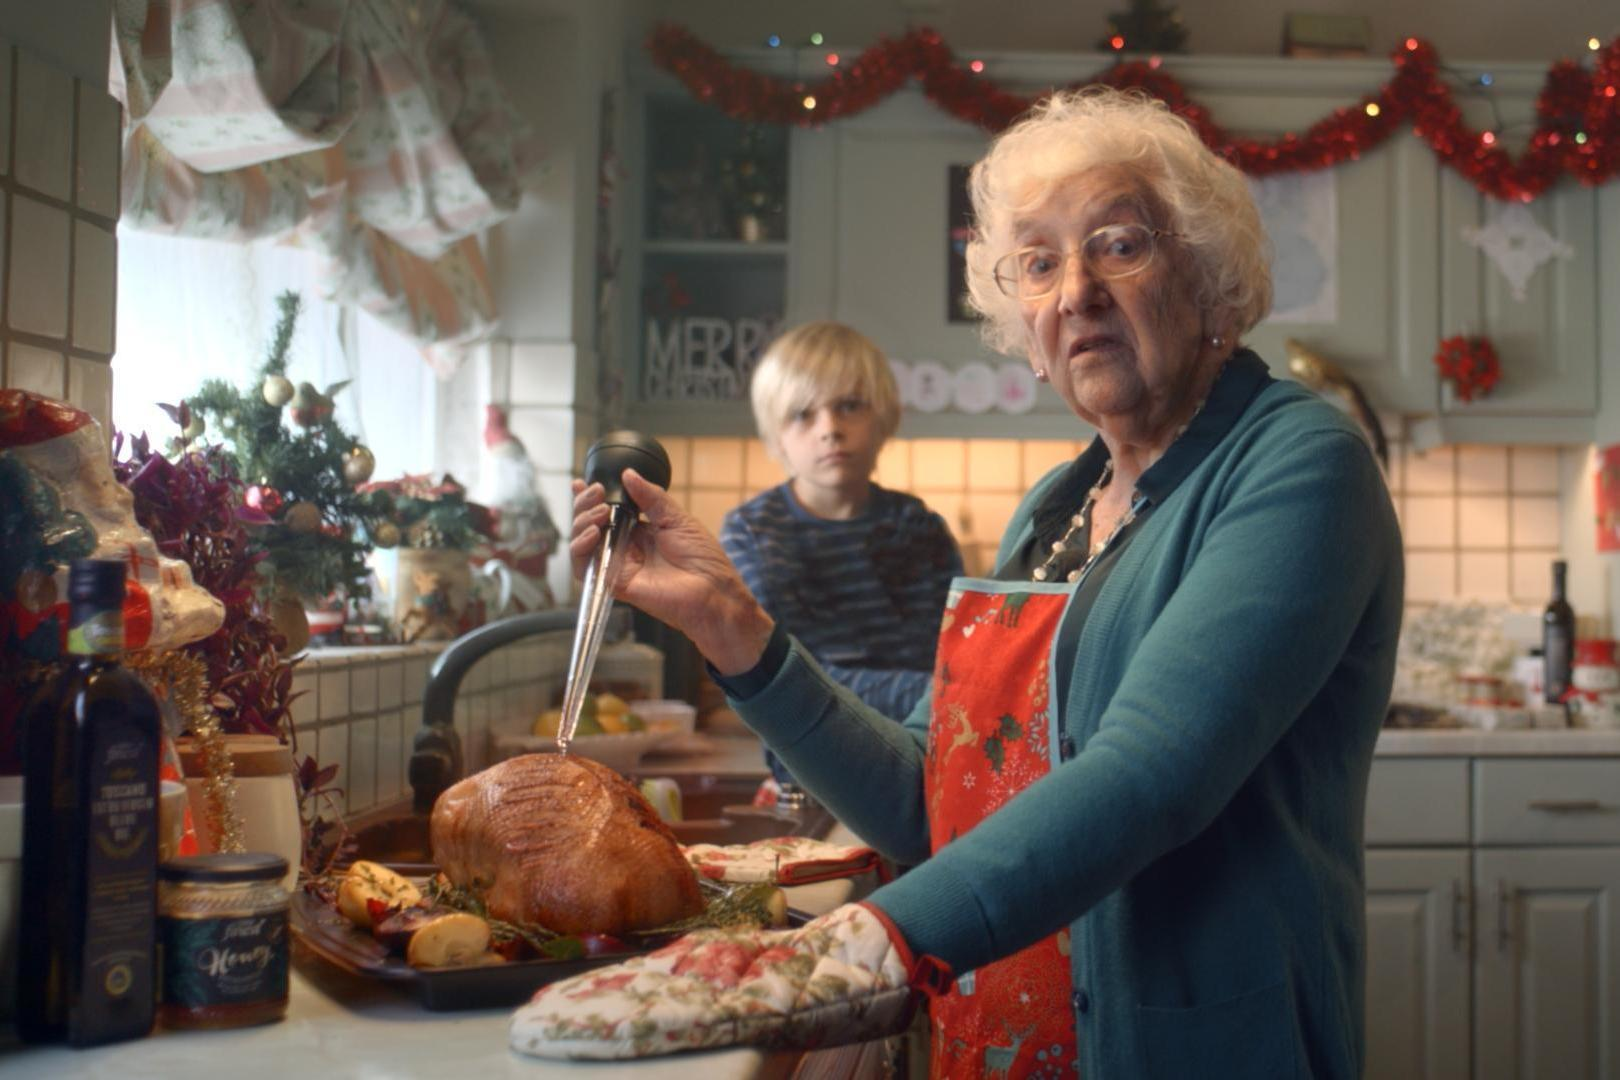 Tesco Christmas Advert 2019 Tesco Christmas advert reveals how every family's traditions